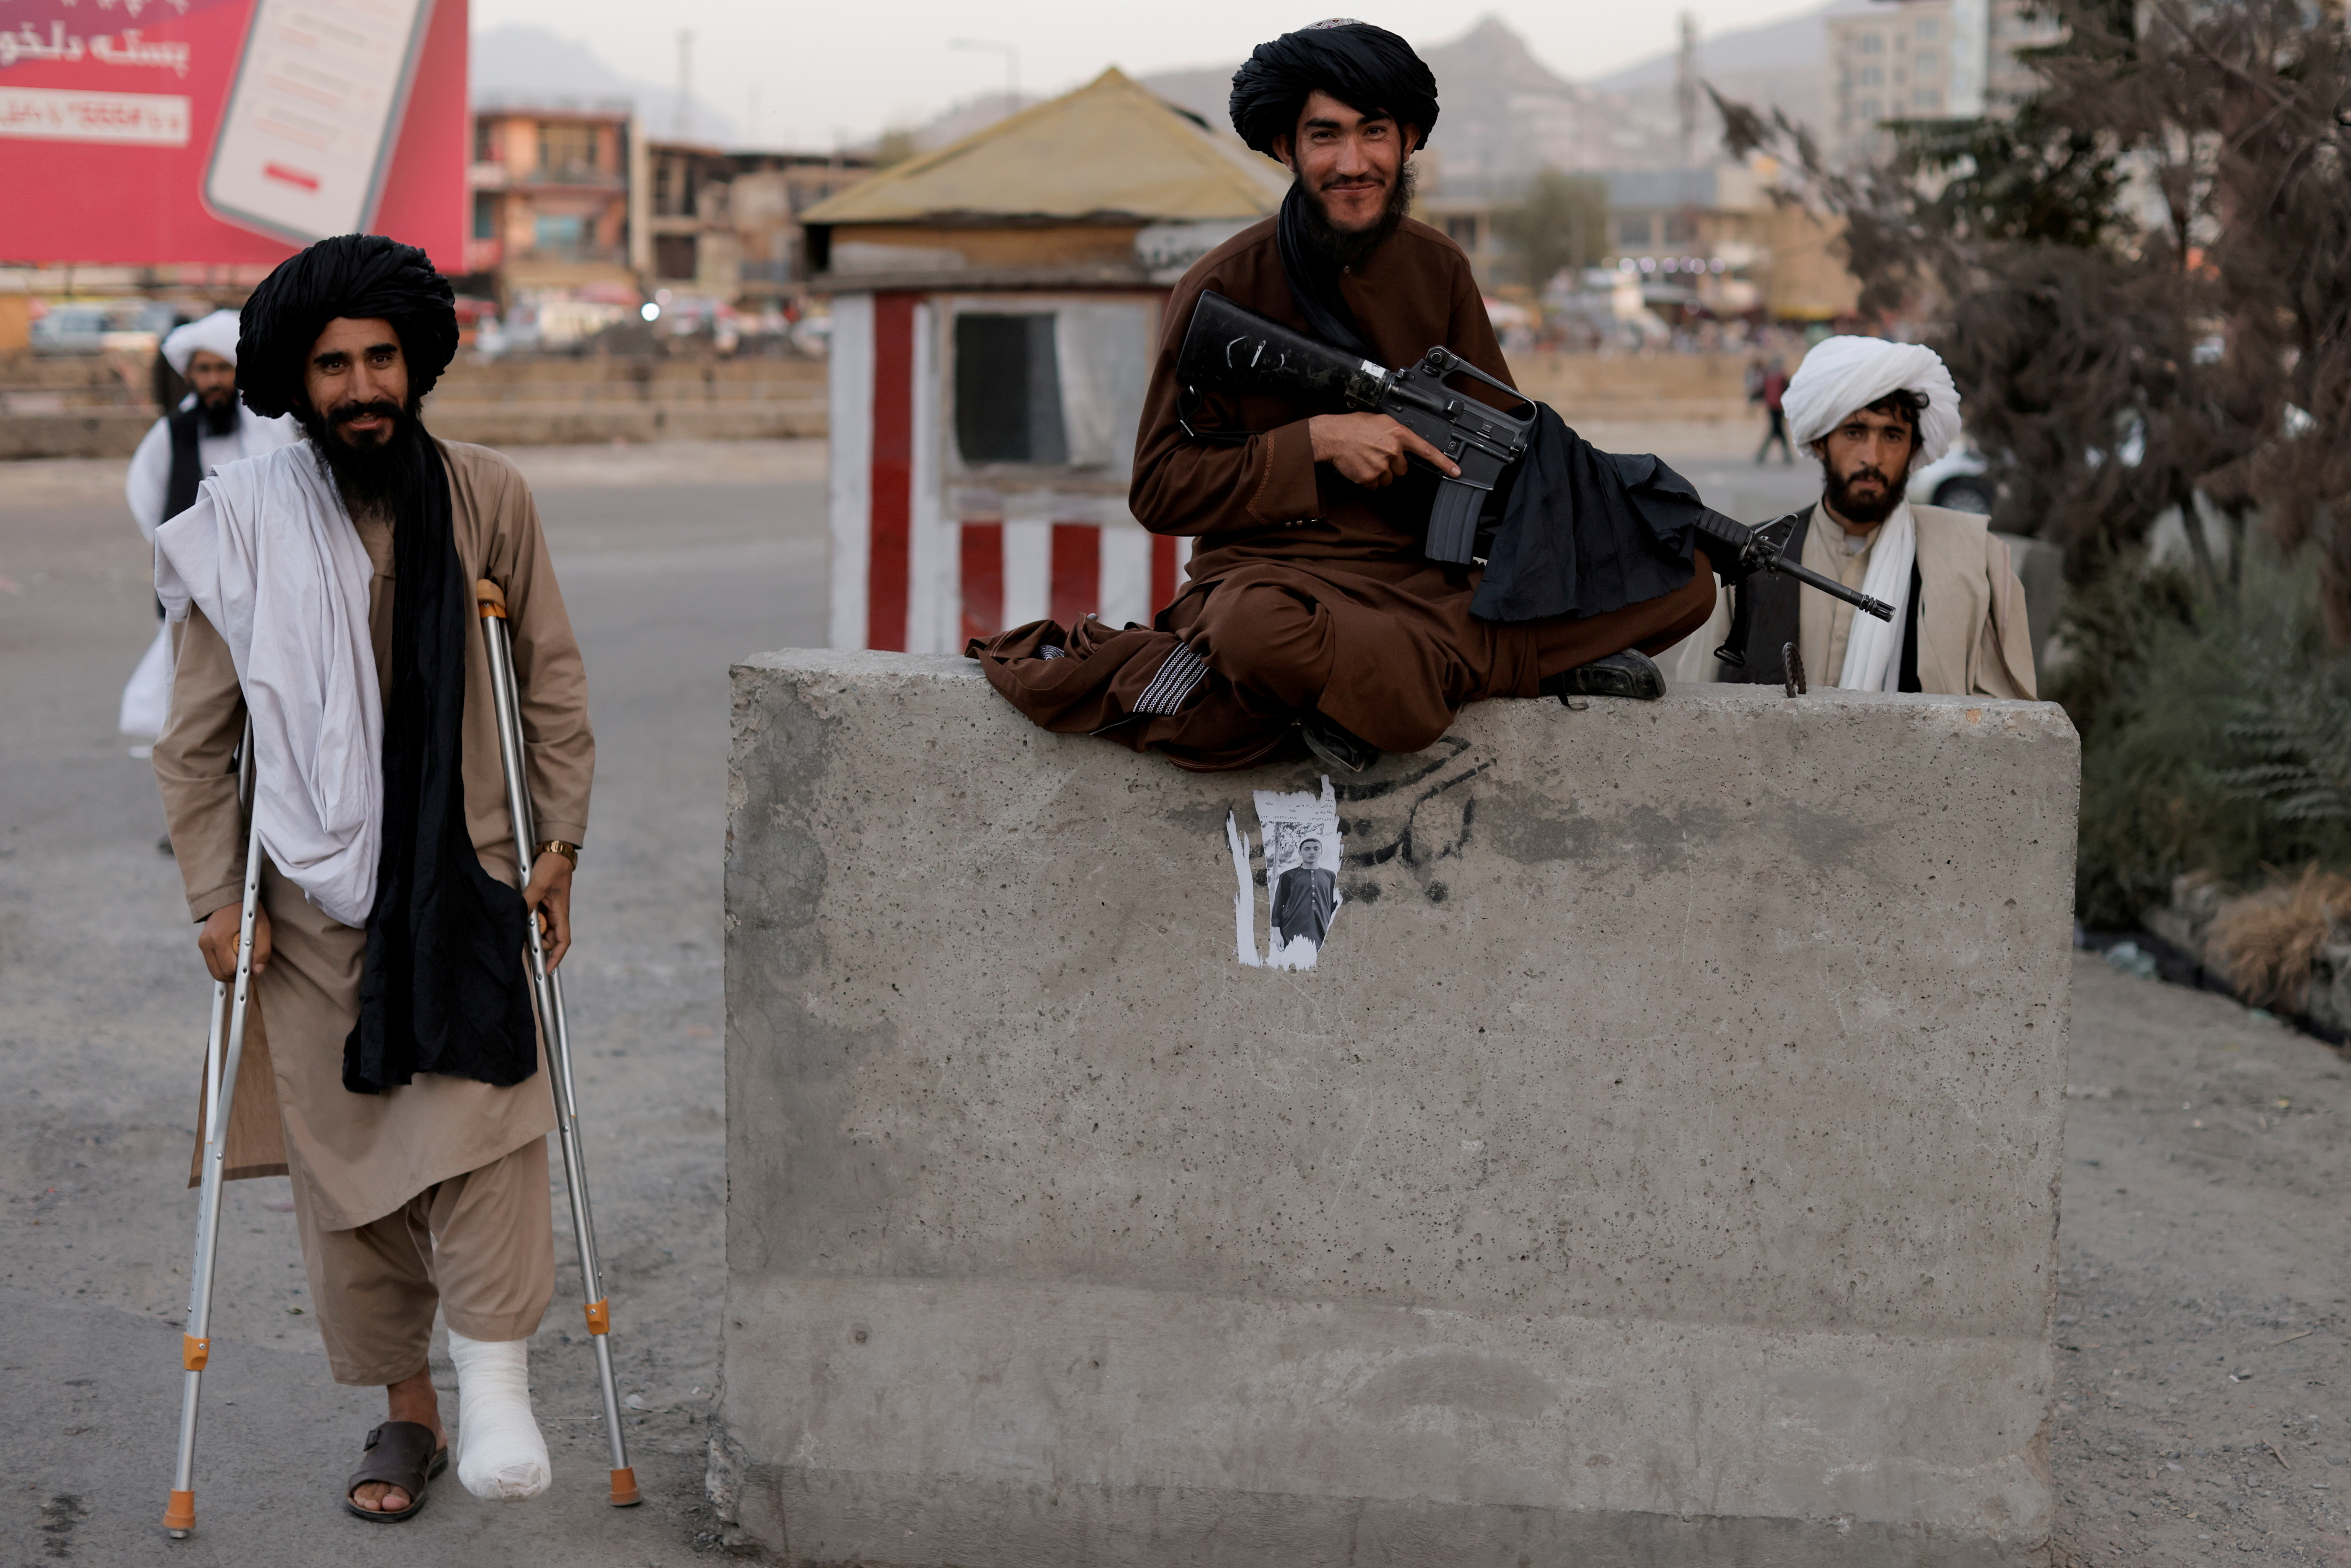 Taliban fighter Mira Jan Himmat, 30, and Rafiullah, 26, from Helmand province smile as they stand guard in a checkpoint in Kabul, Afghanistan October 5, 2021. REUTERS/Jorge Silva/File Photo